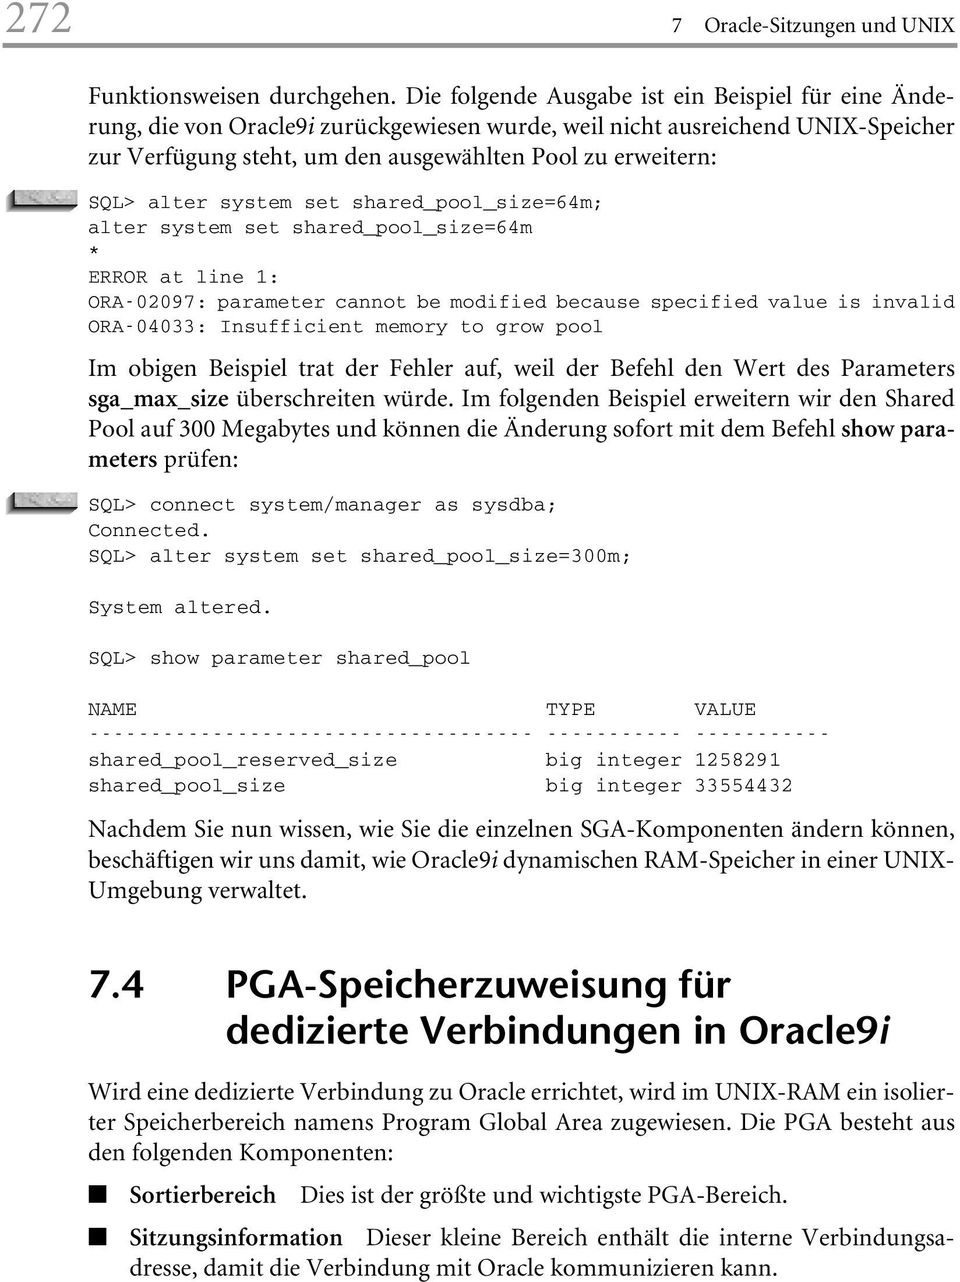 Oracle9i unix administrations handbuch pdf for Show parameter pool